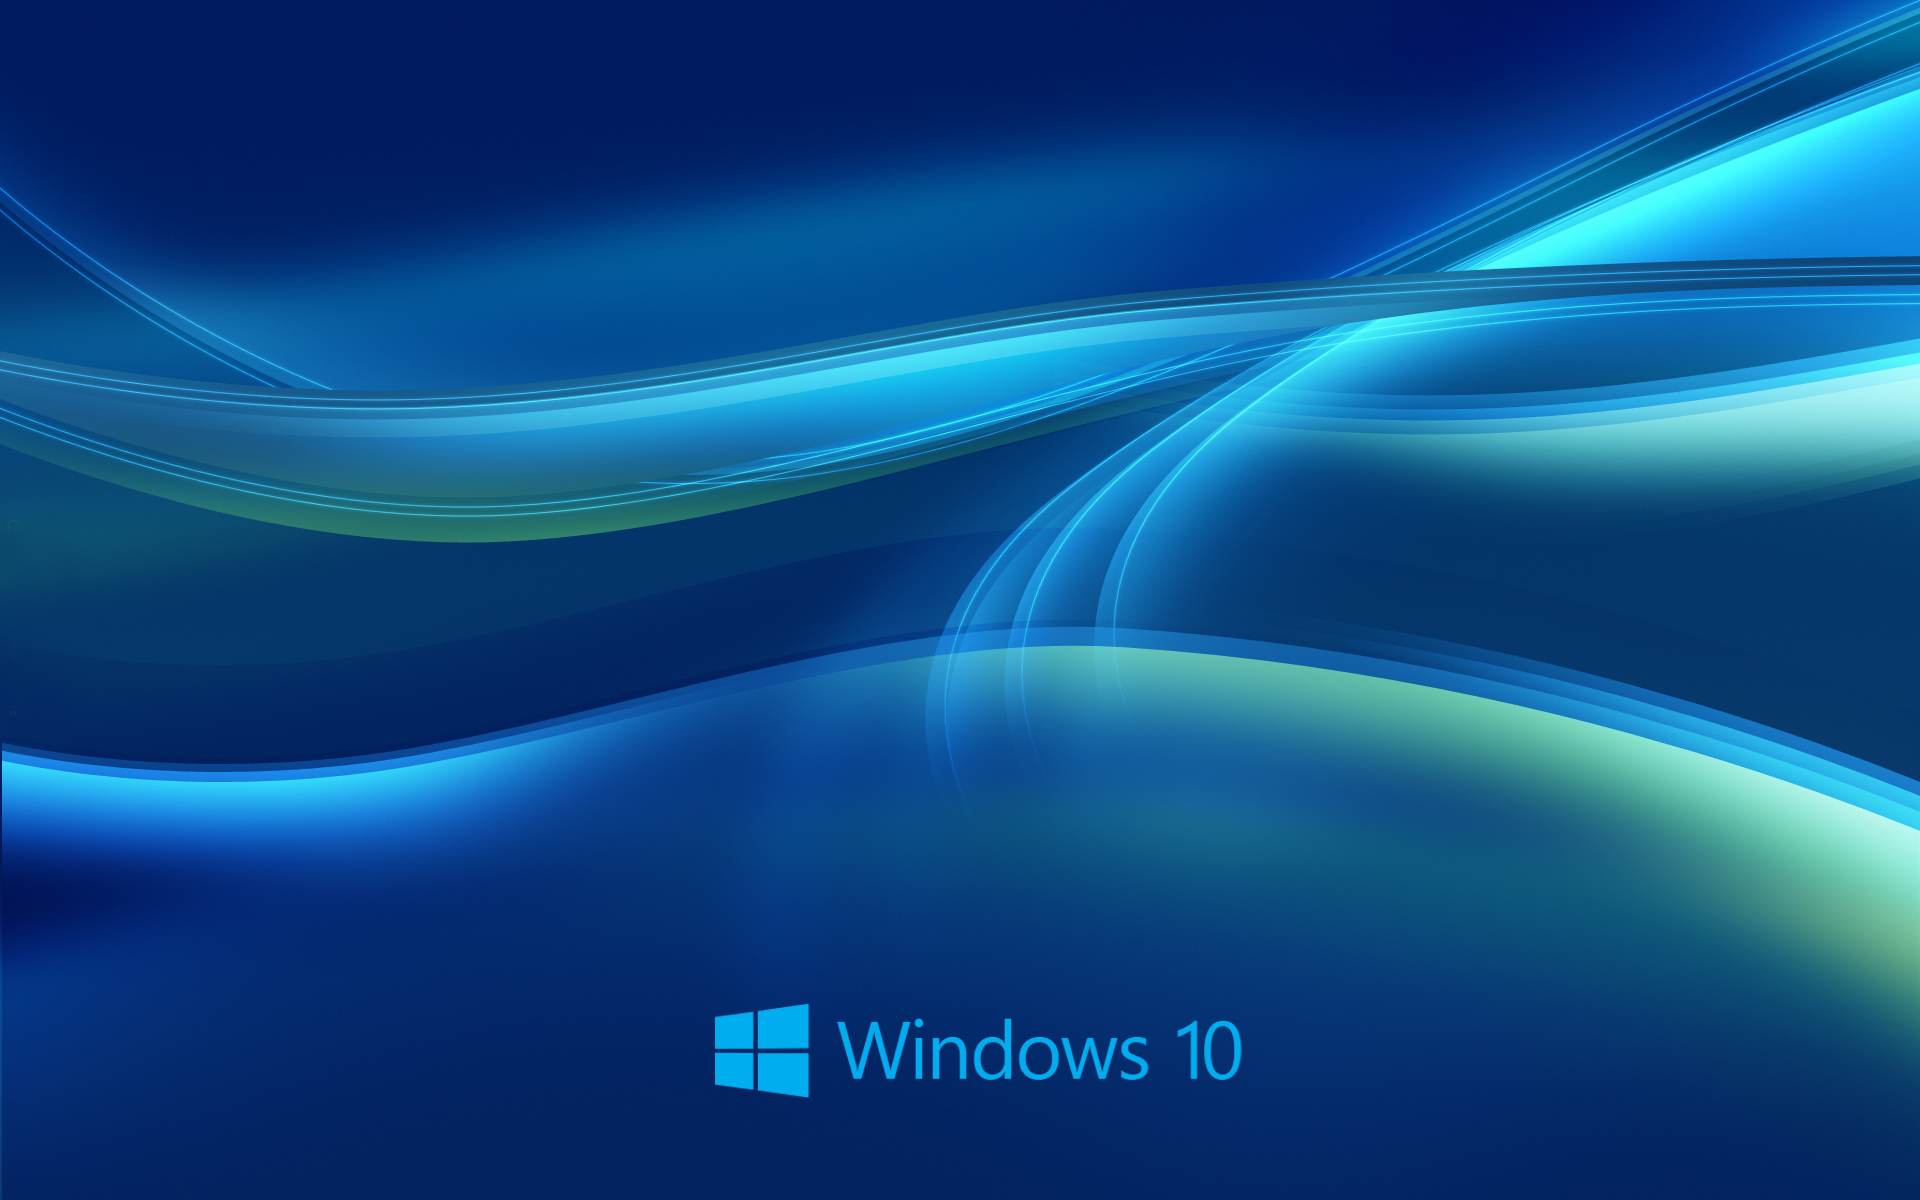 Windows 10 Wallpapers 1920x1200